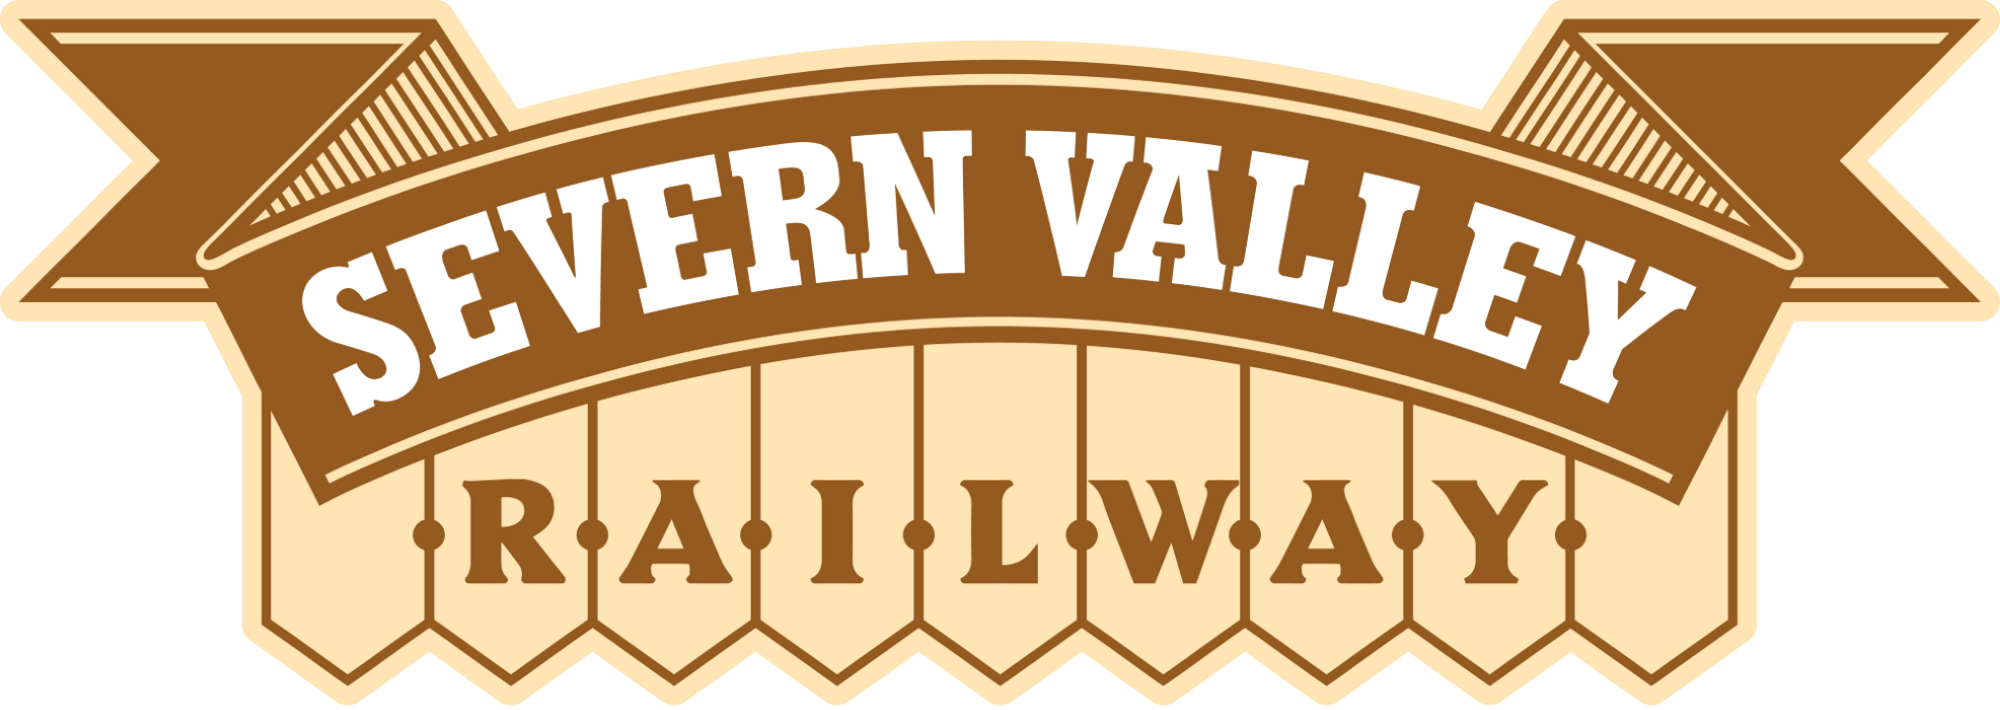 severn_valley_logo.png